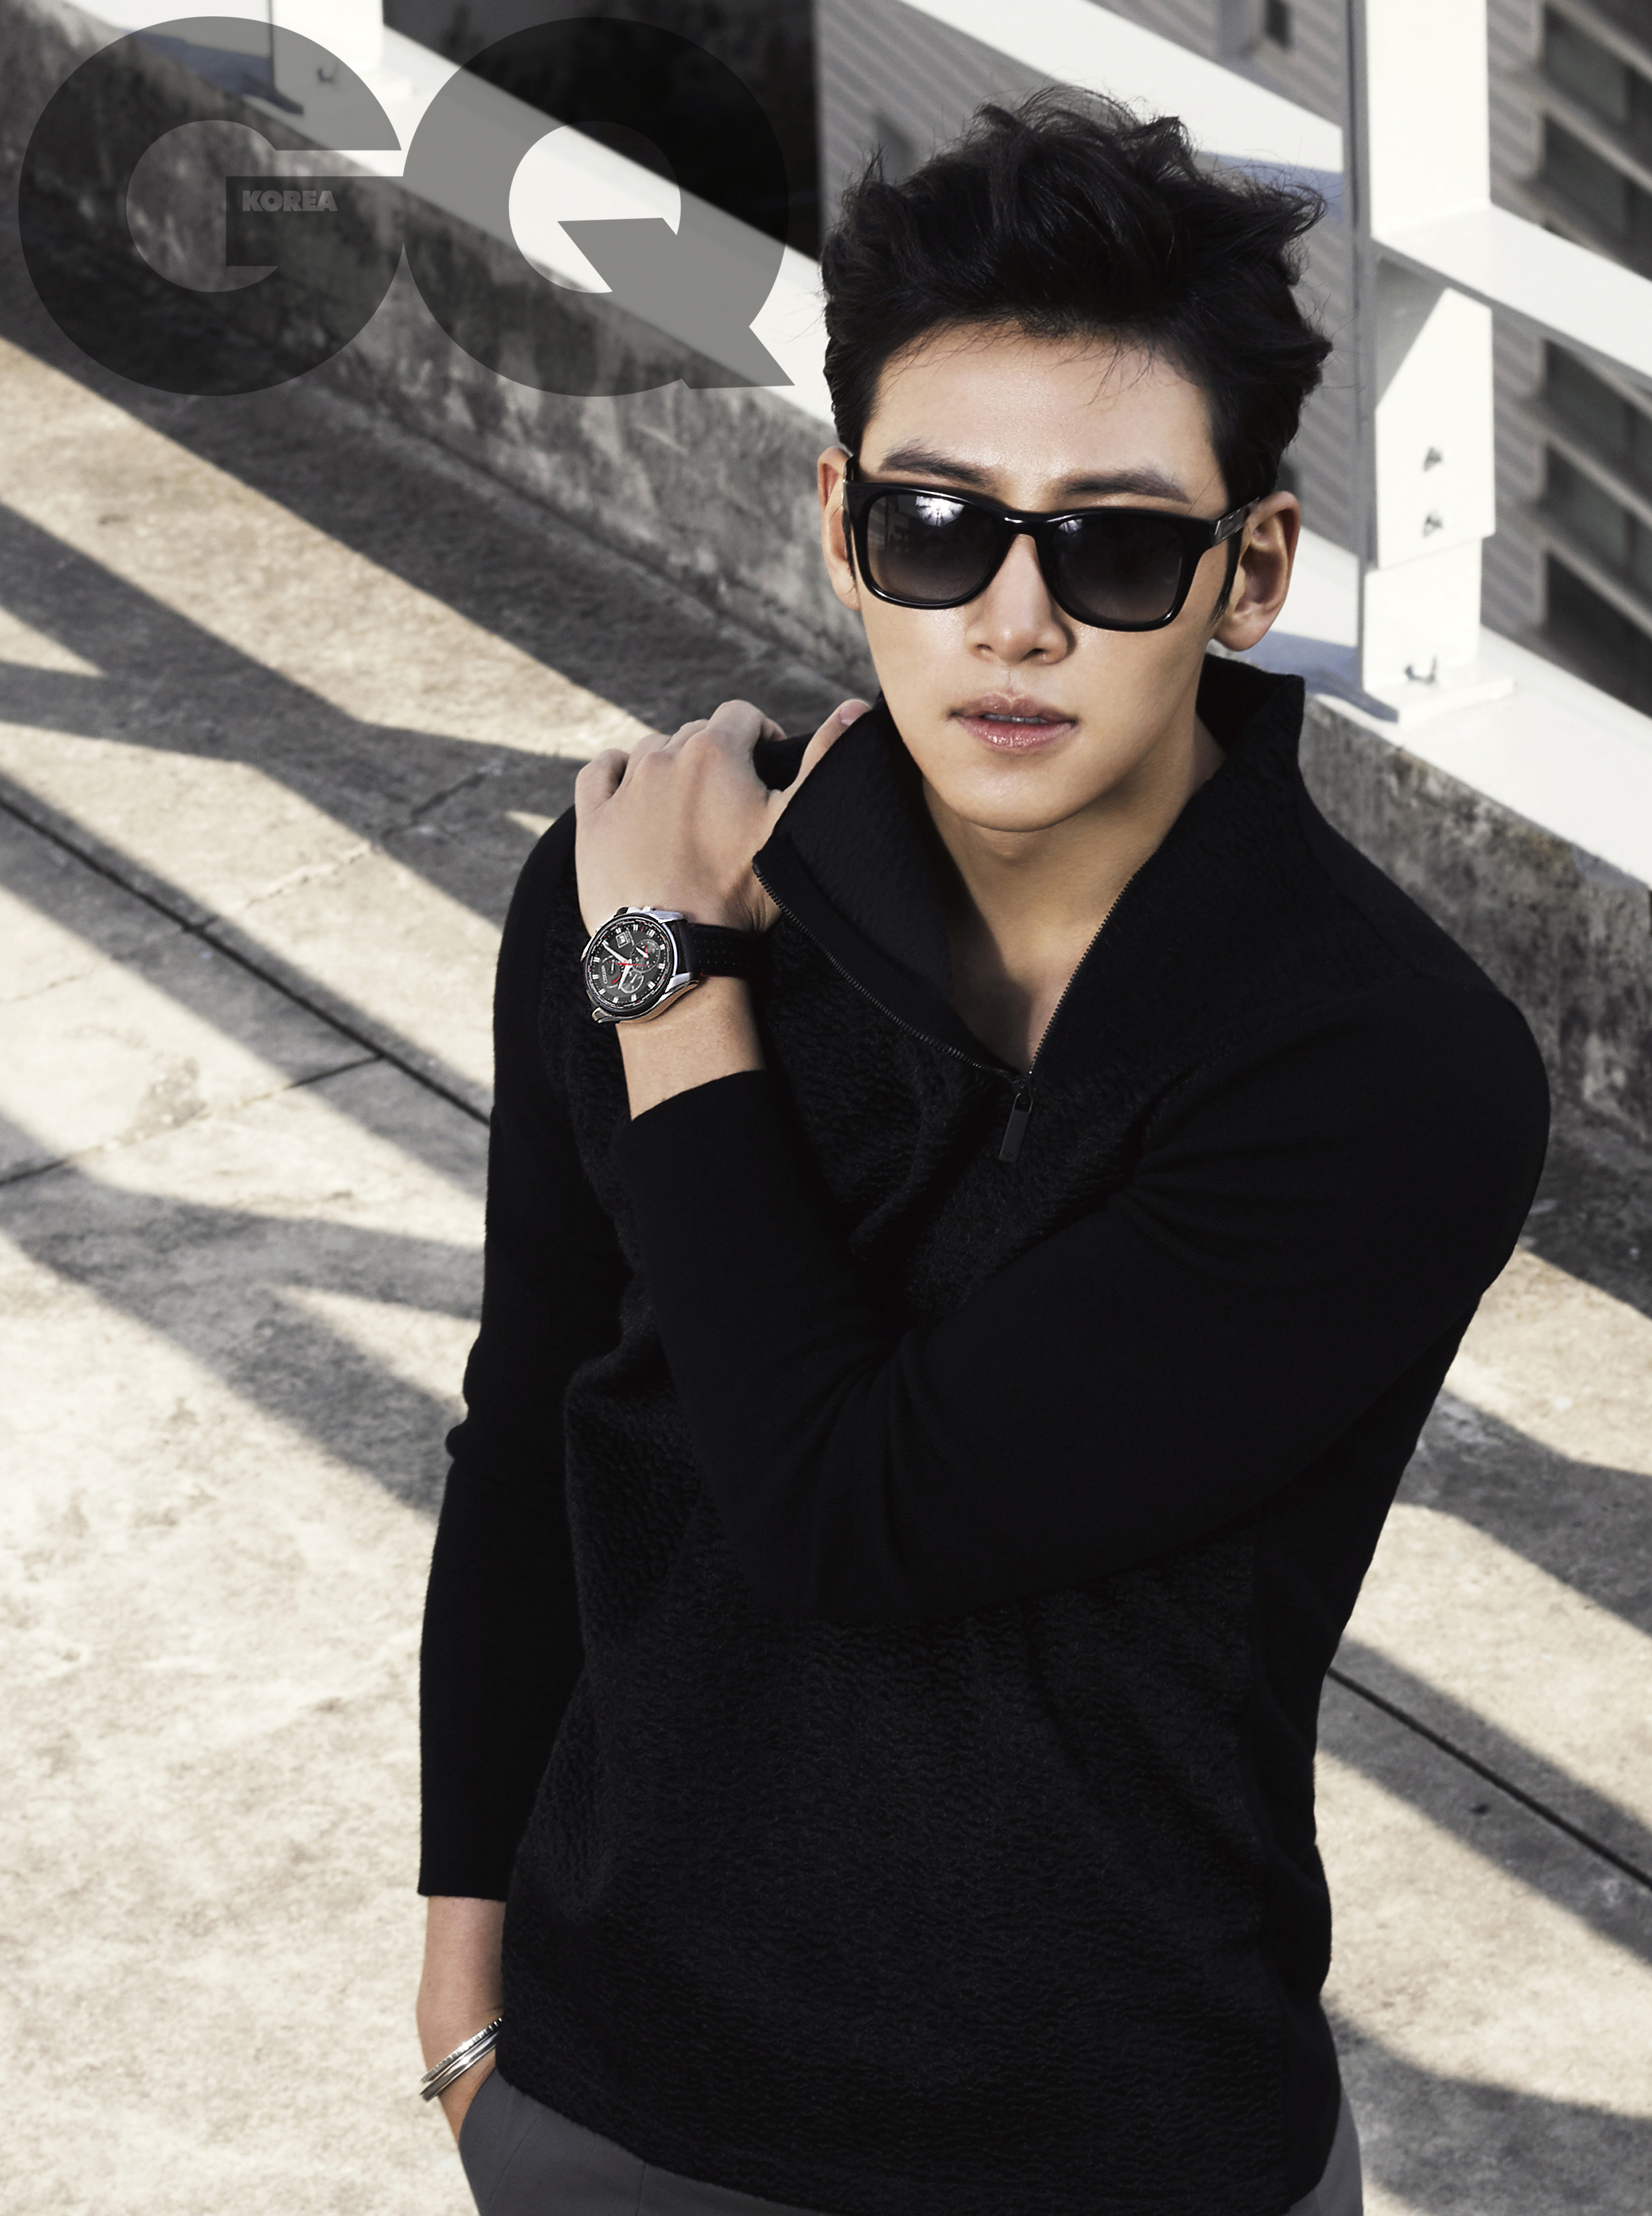 Ji Chang-wook Android/iPhone Wallpaper #79854 - Asiachan ...